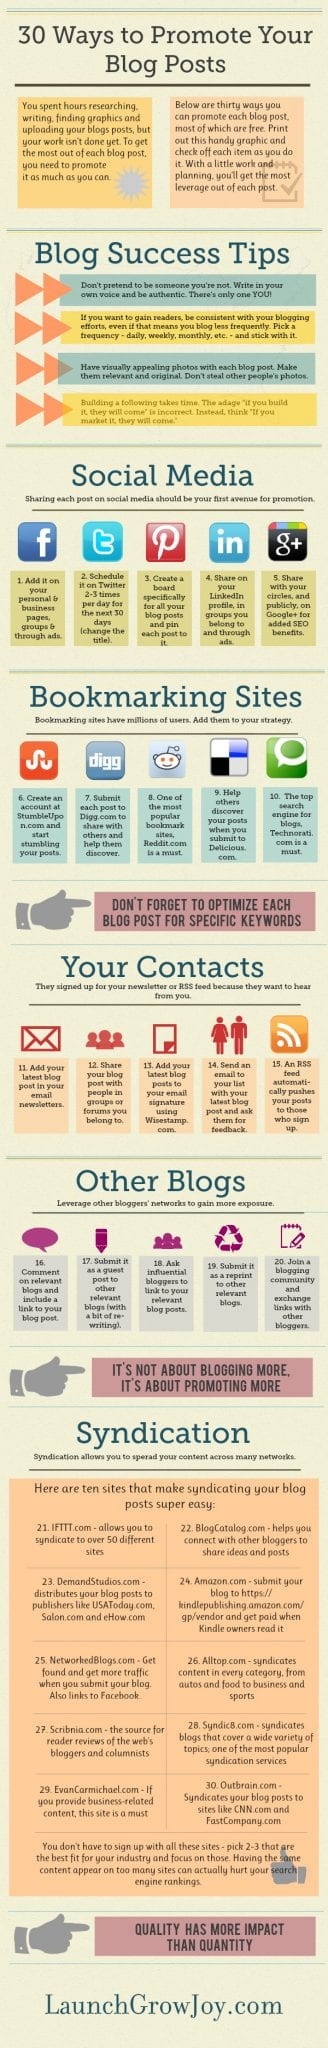 30-ways-to-promote-your-blog-posts1